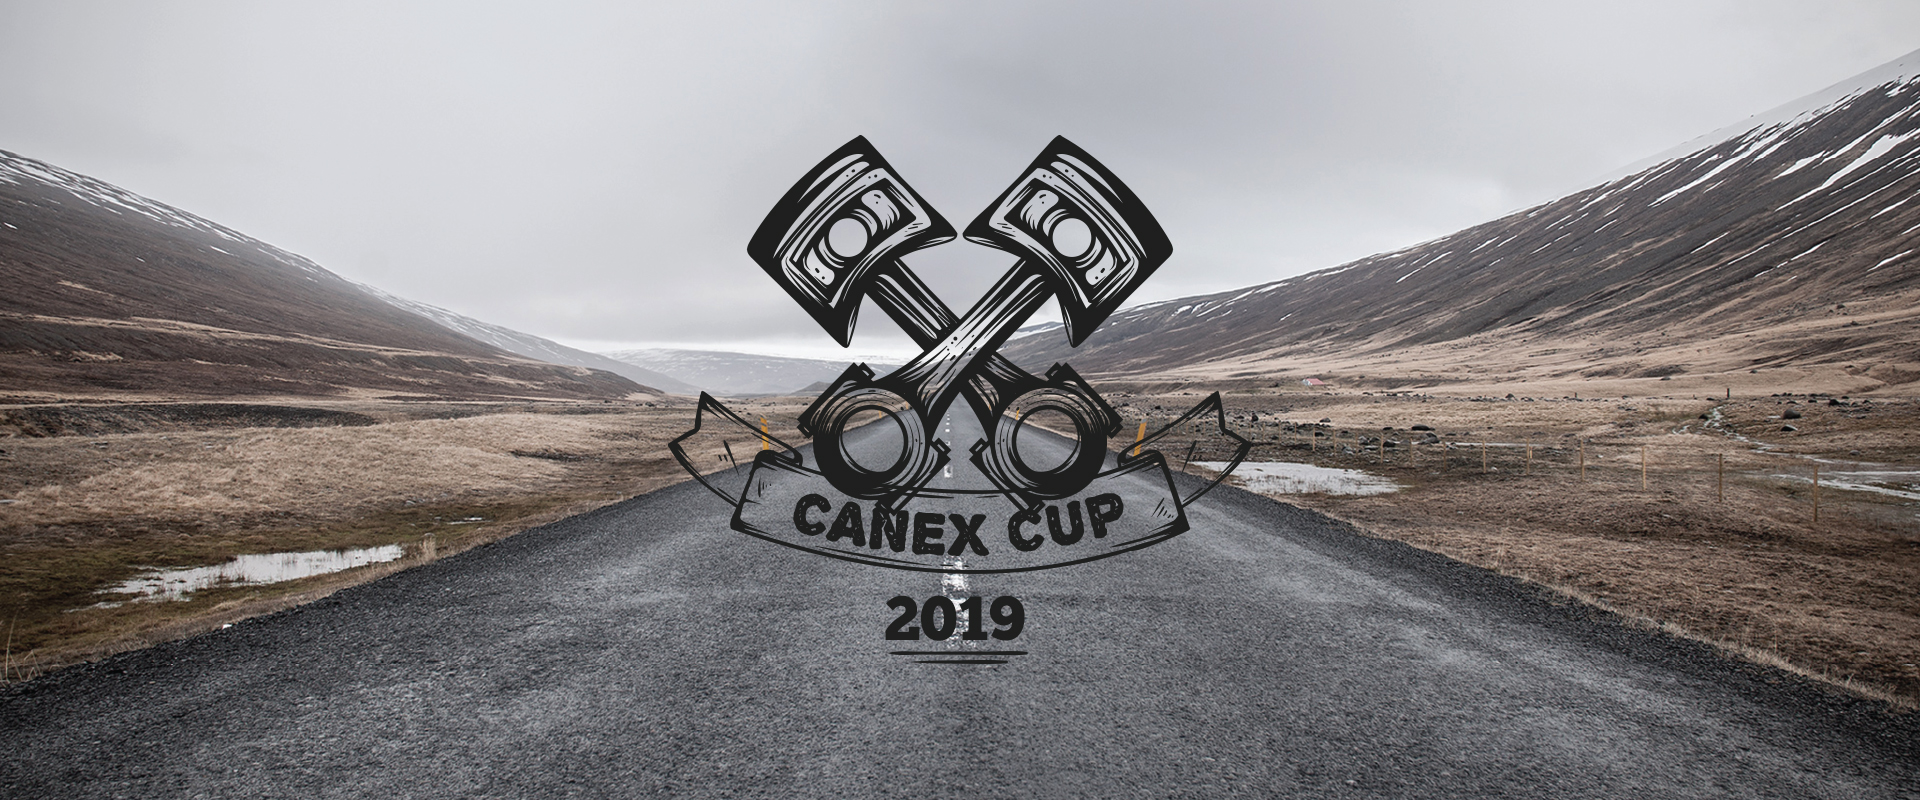 CANEX CUP 2019